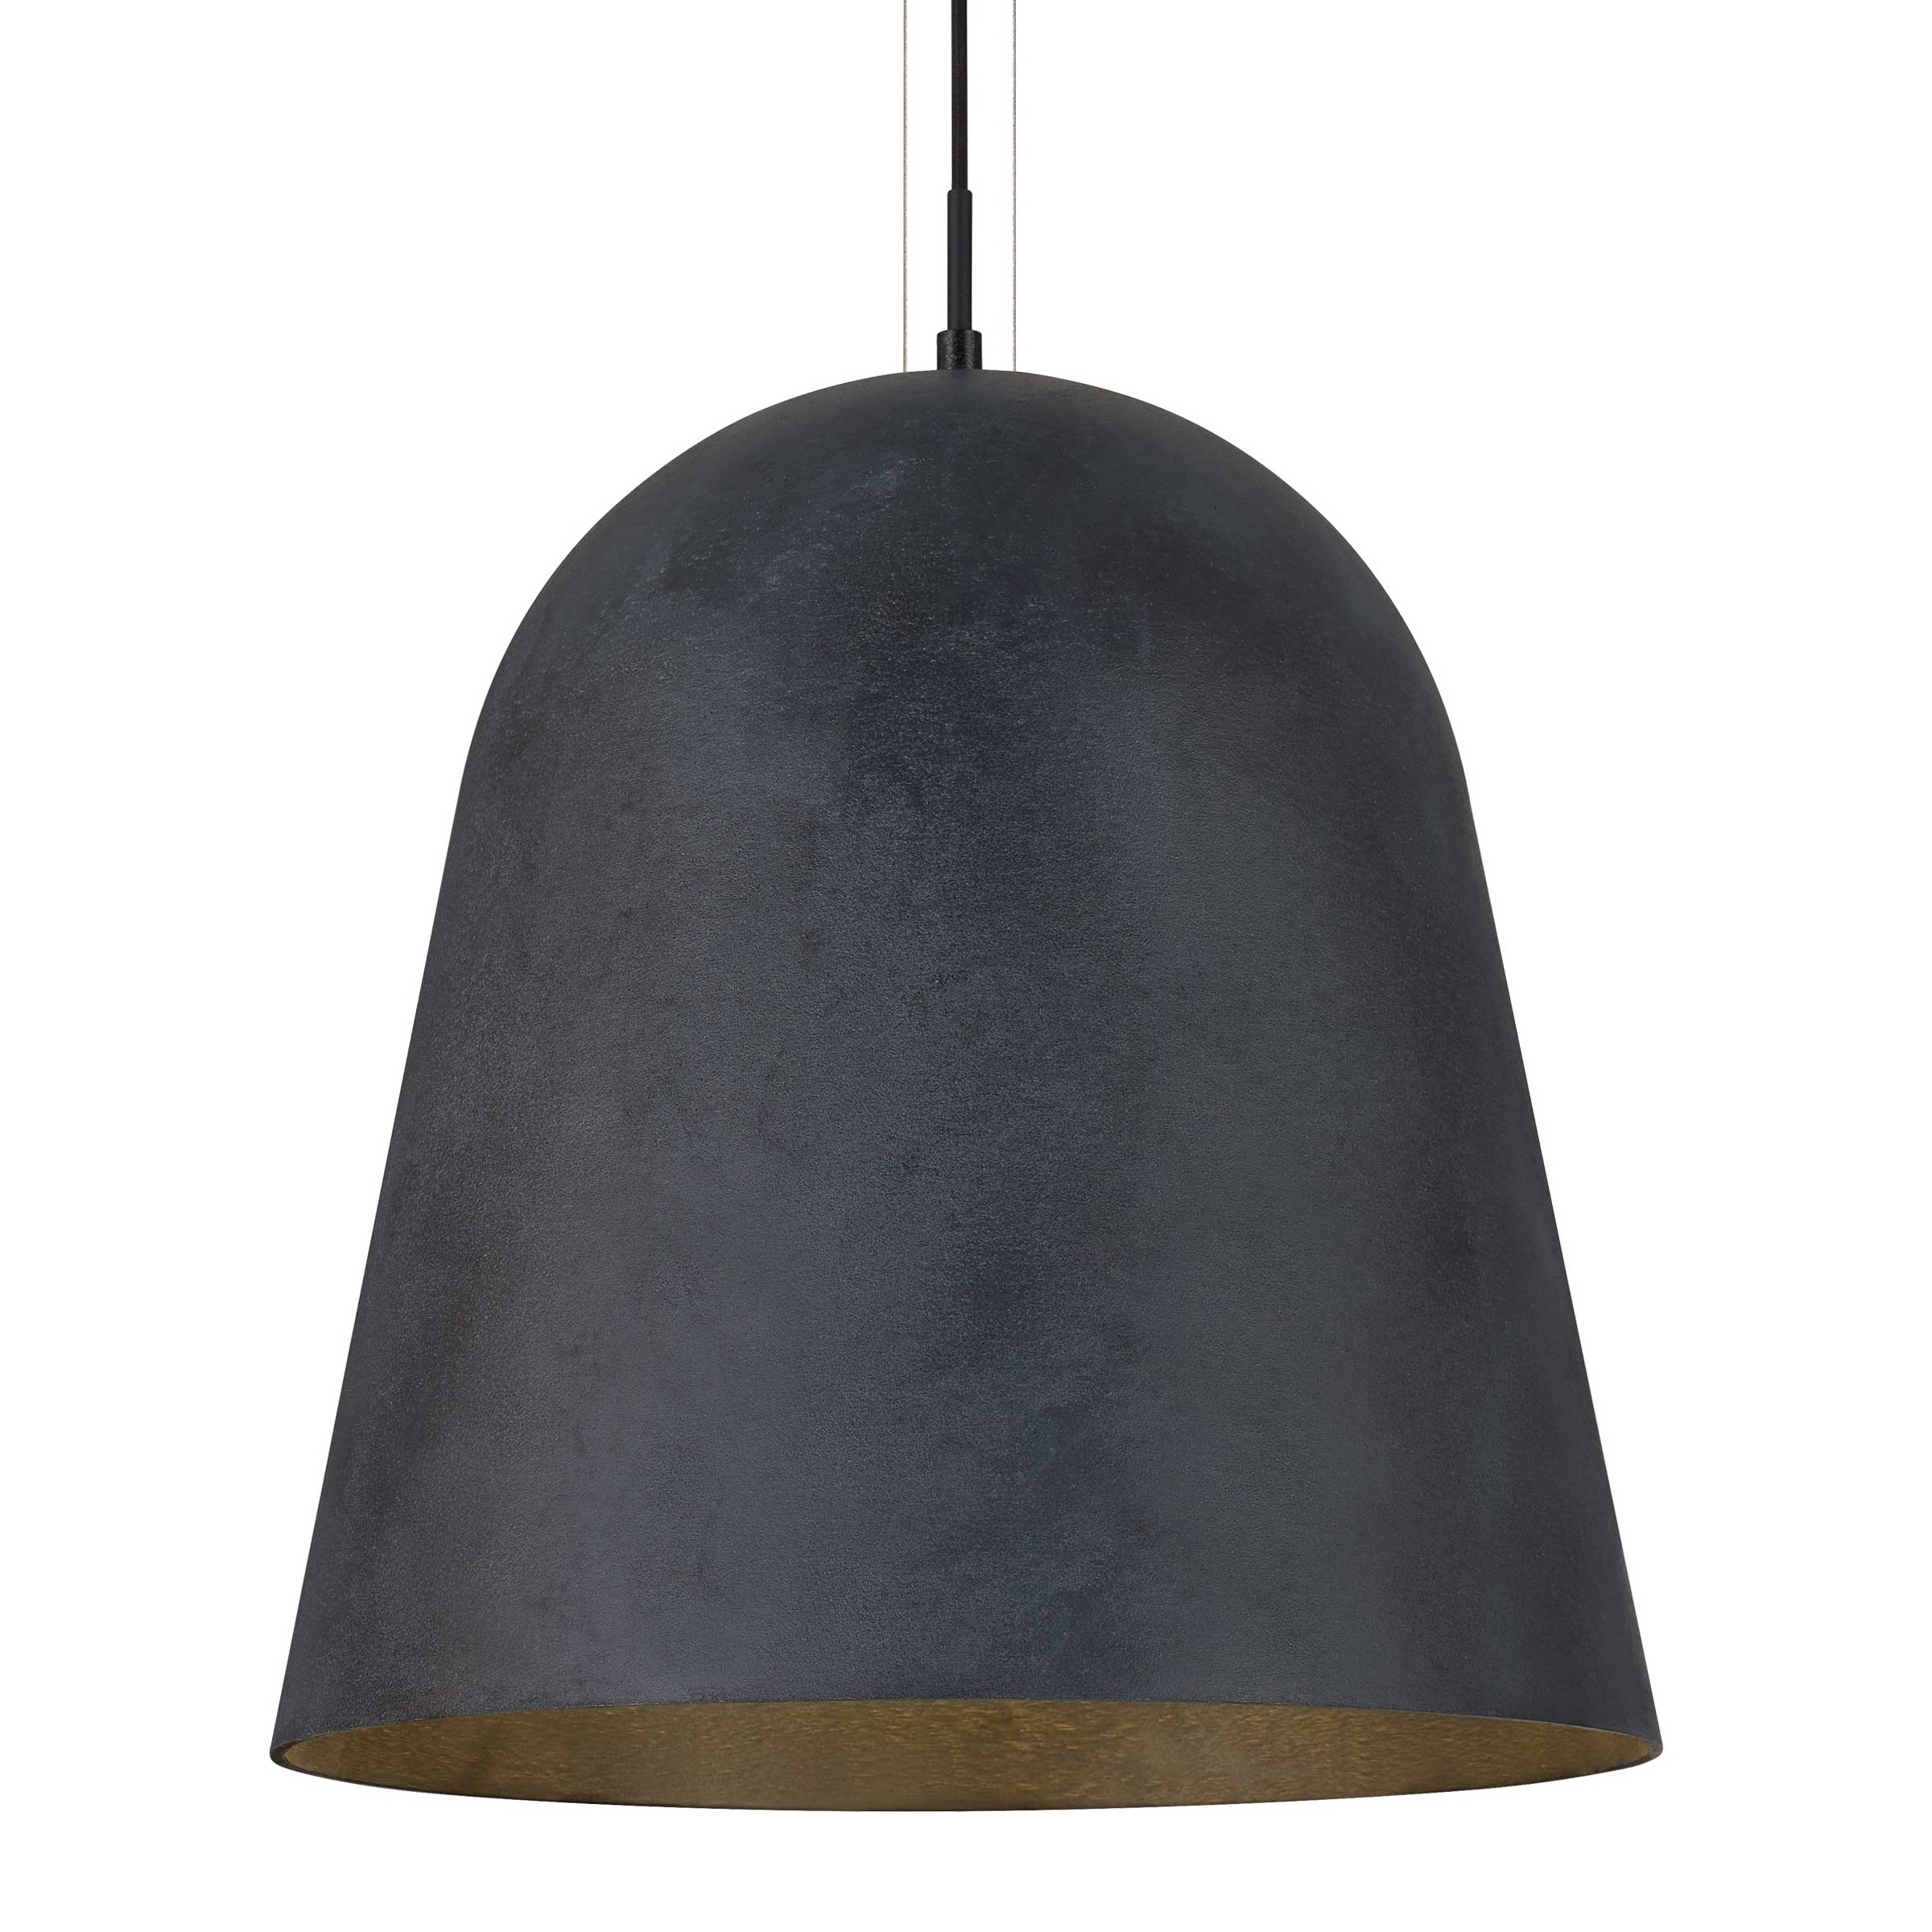 fett pendant by tech lighting 700tdfetpe led930